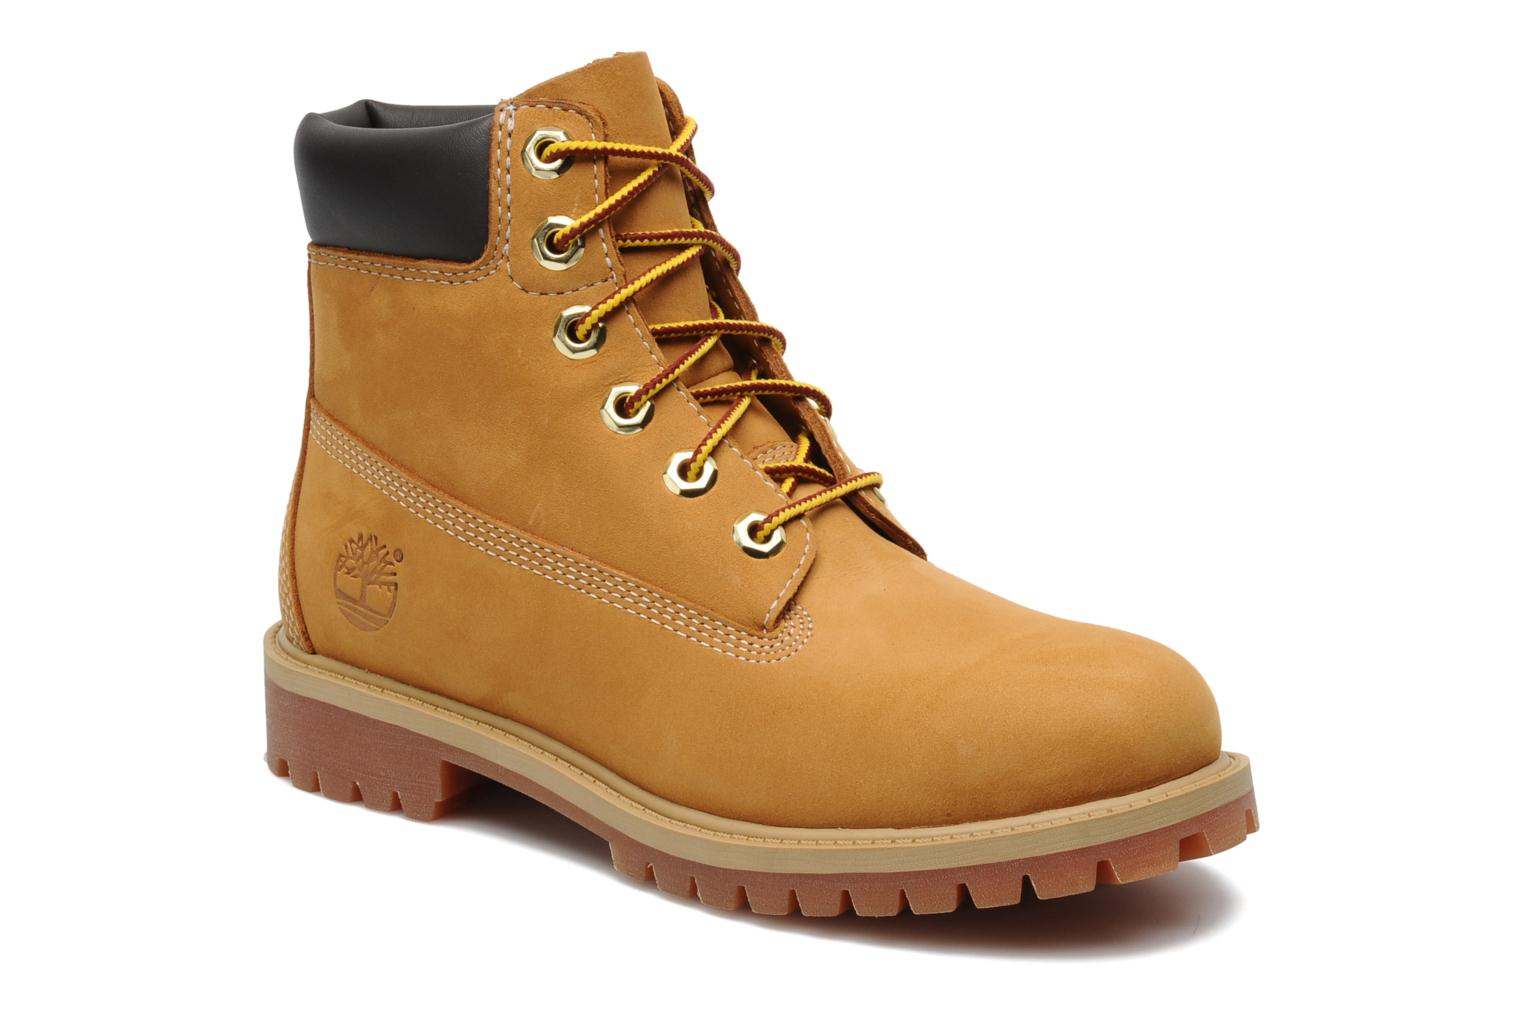 bottes comme timberland